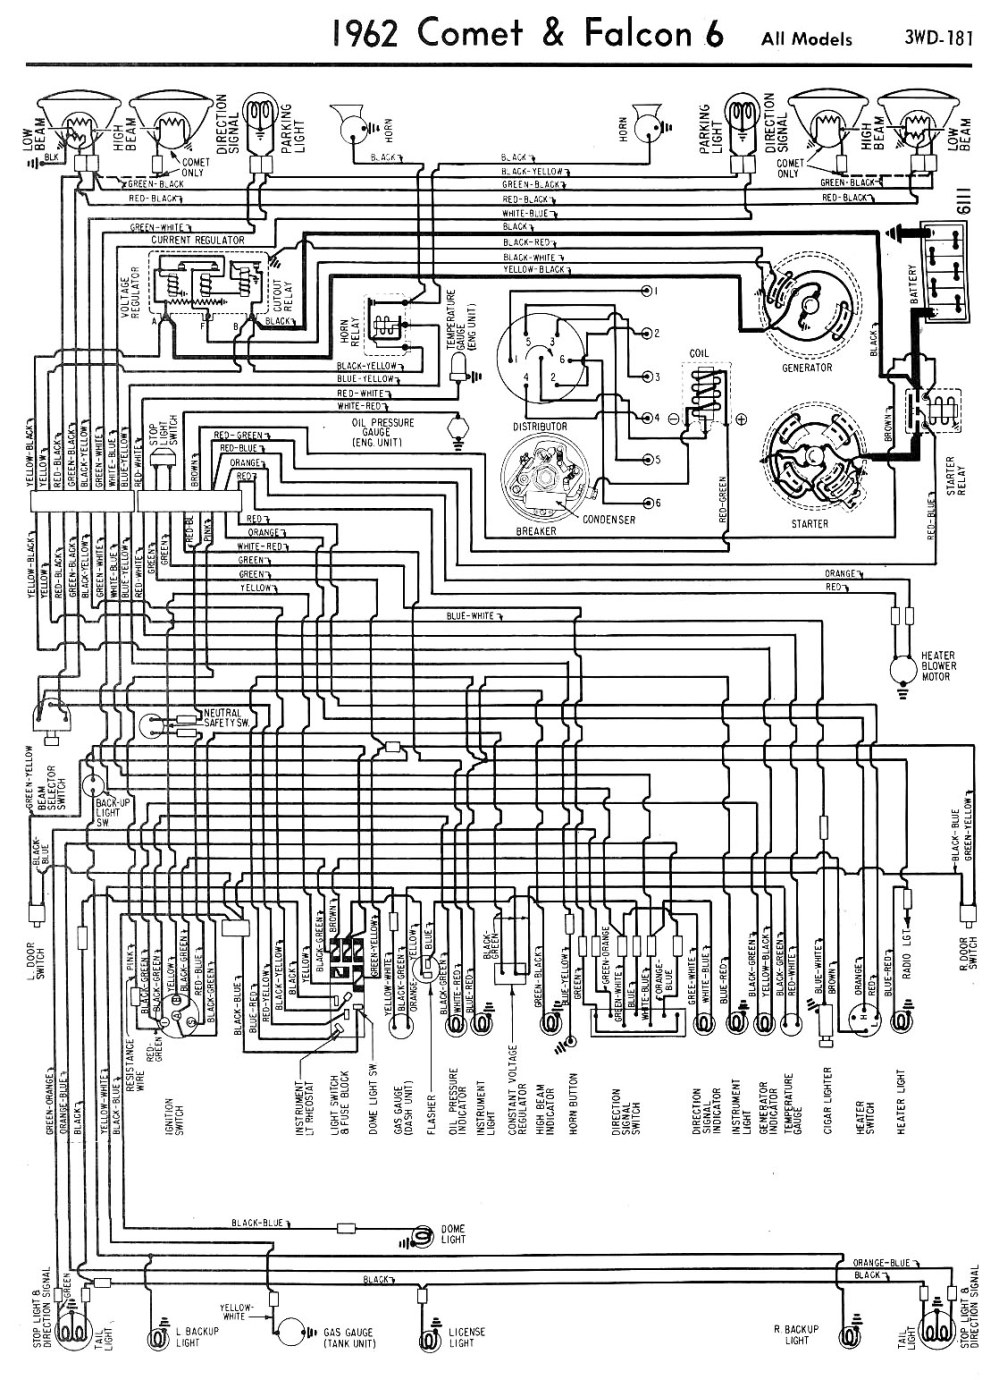 medium resolution of 62 falcon comet wiring